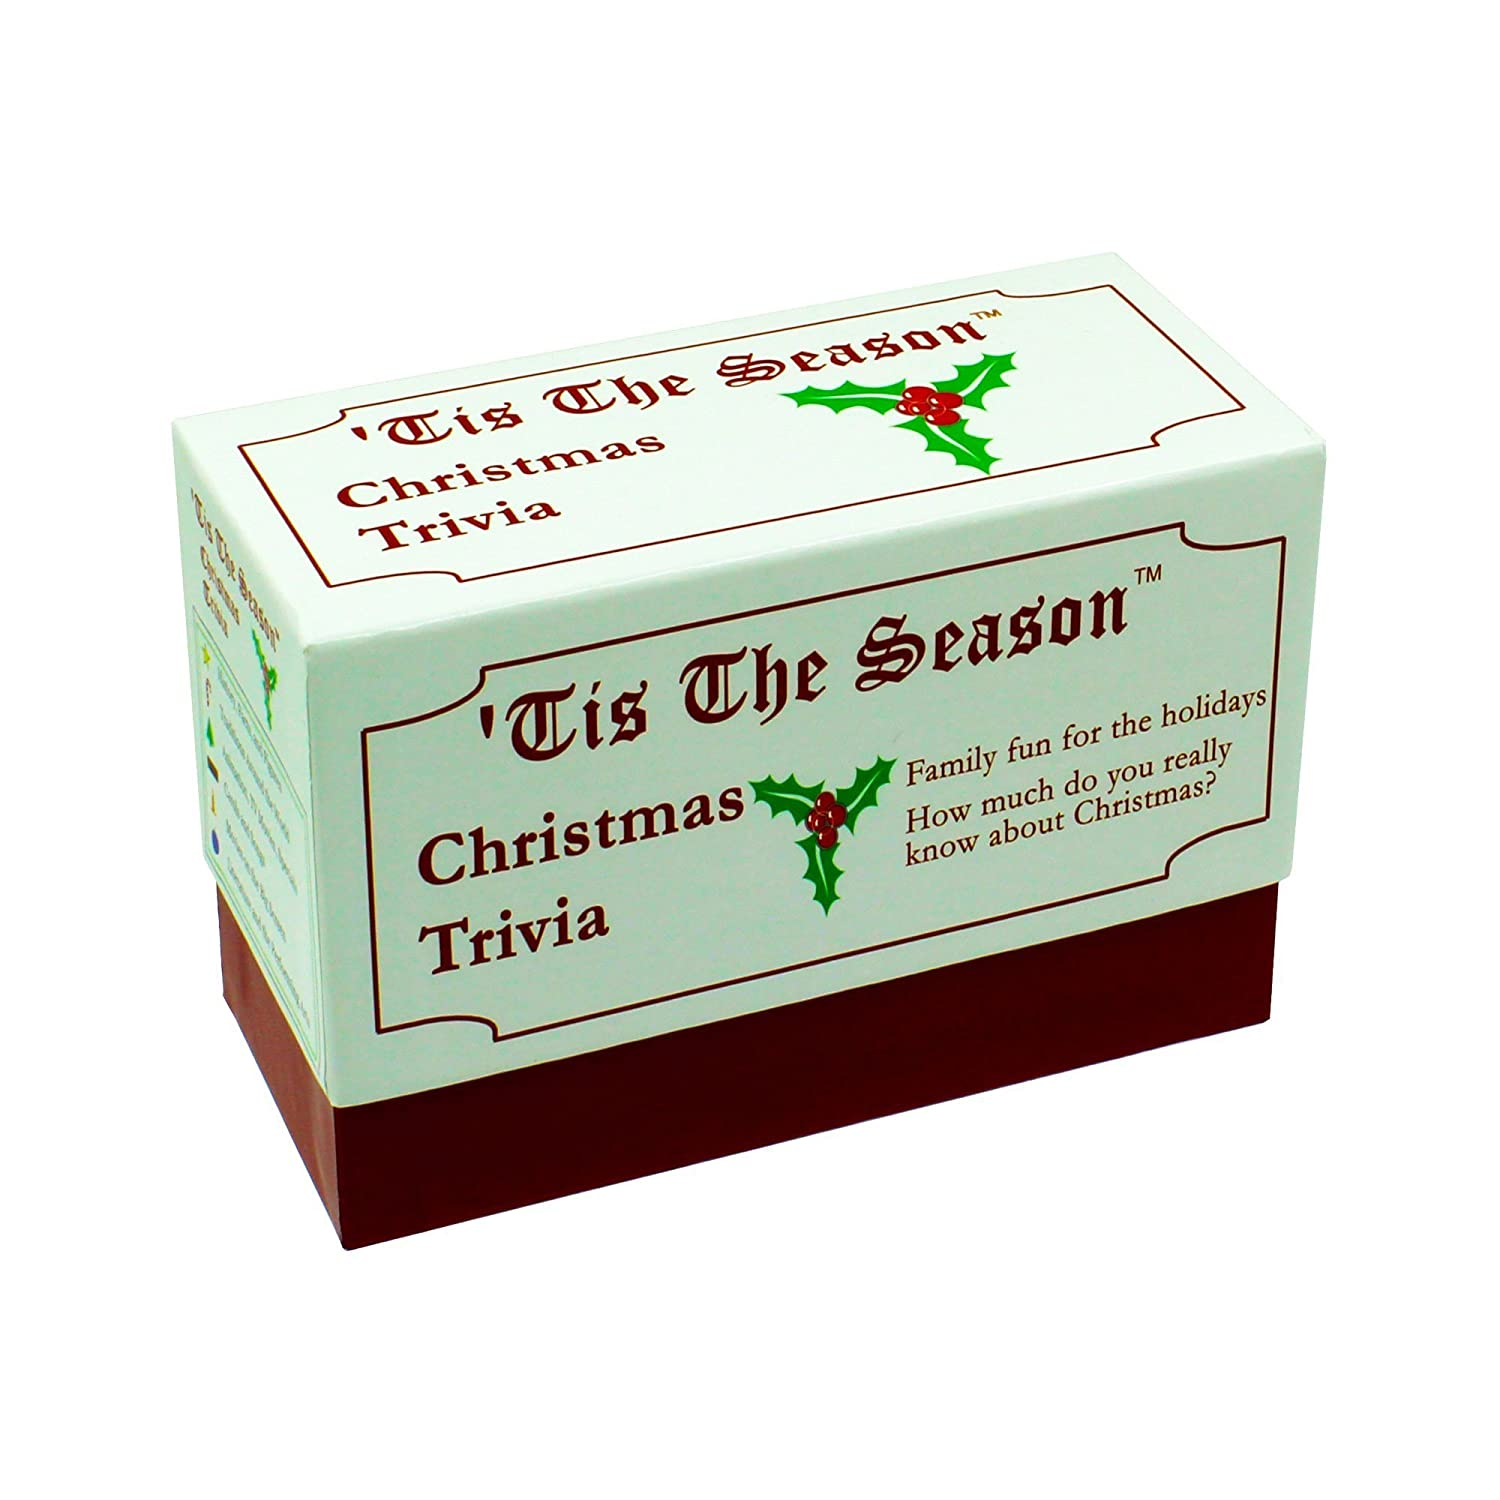 Tis The Season Christmas Trivia Game - The Classic and Original - Featuring Christmas Trivia Cards & Questions That Make For Great Holiday Games For The Entire Family